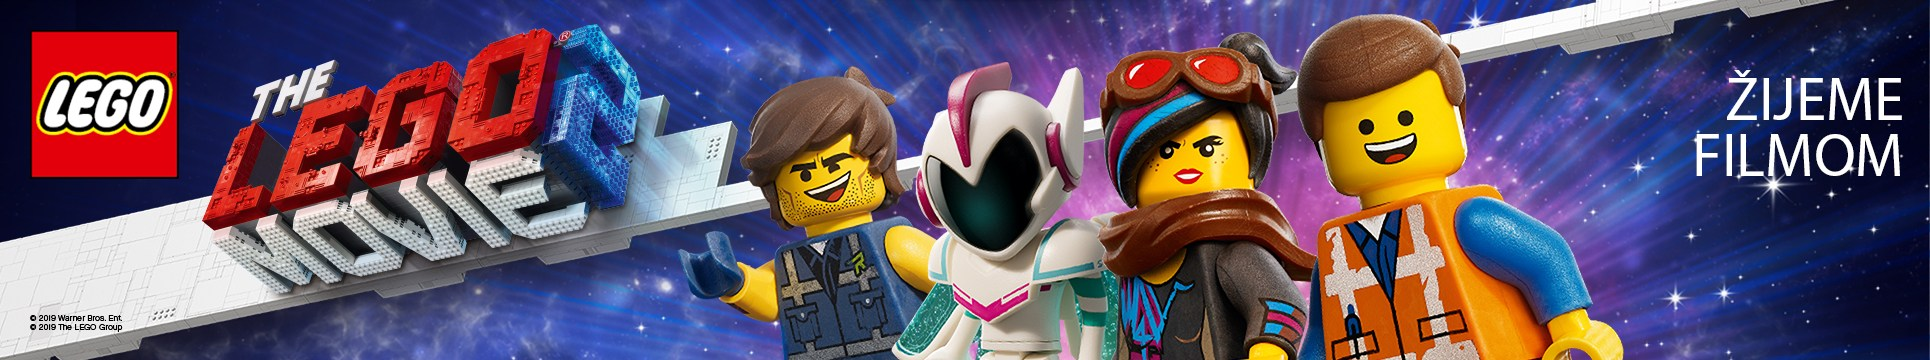 LEGO_LEGO_MOVIE_2_Leaderboard